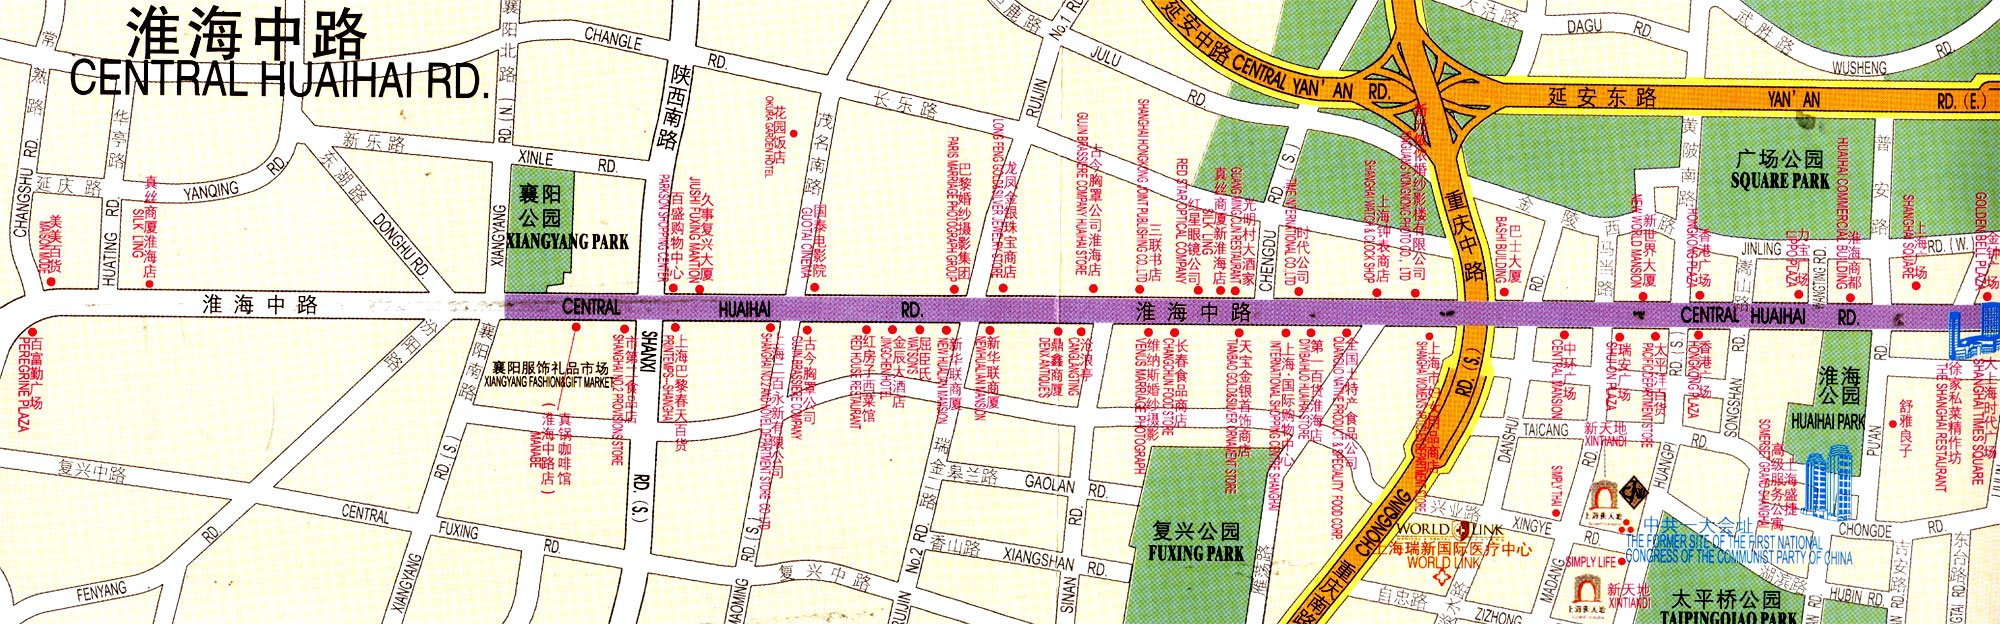 Map of Huaihai Road Shanghai